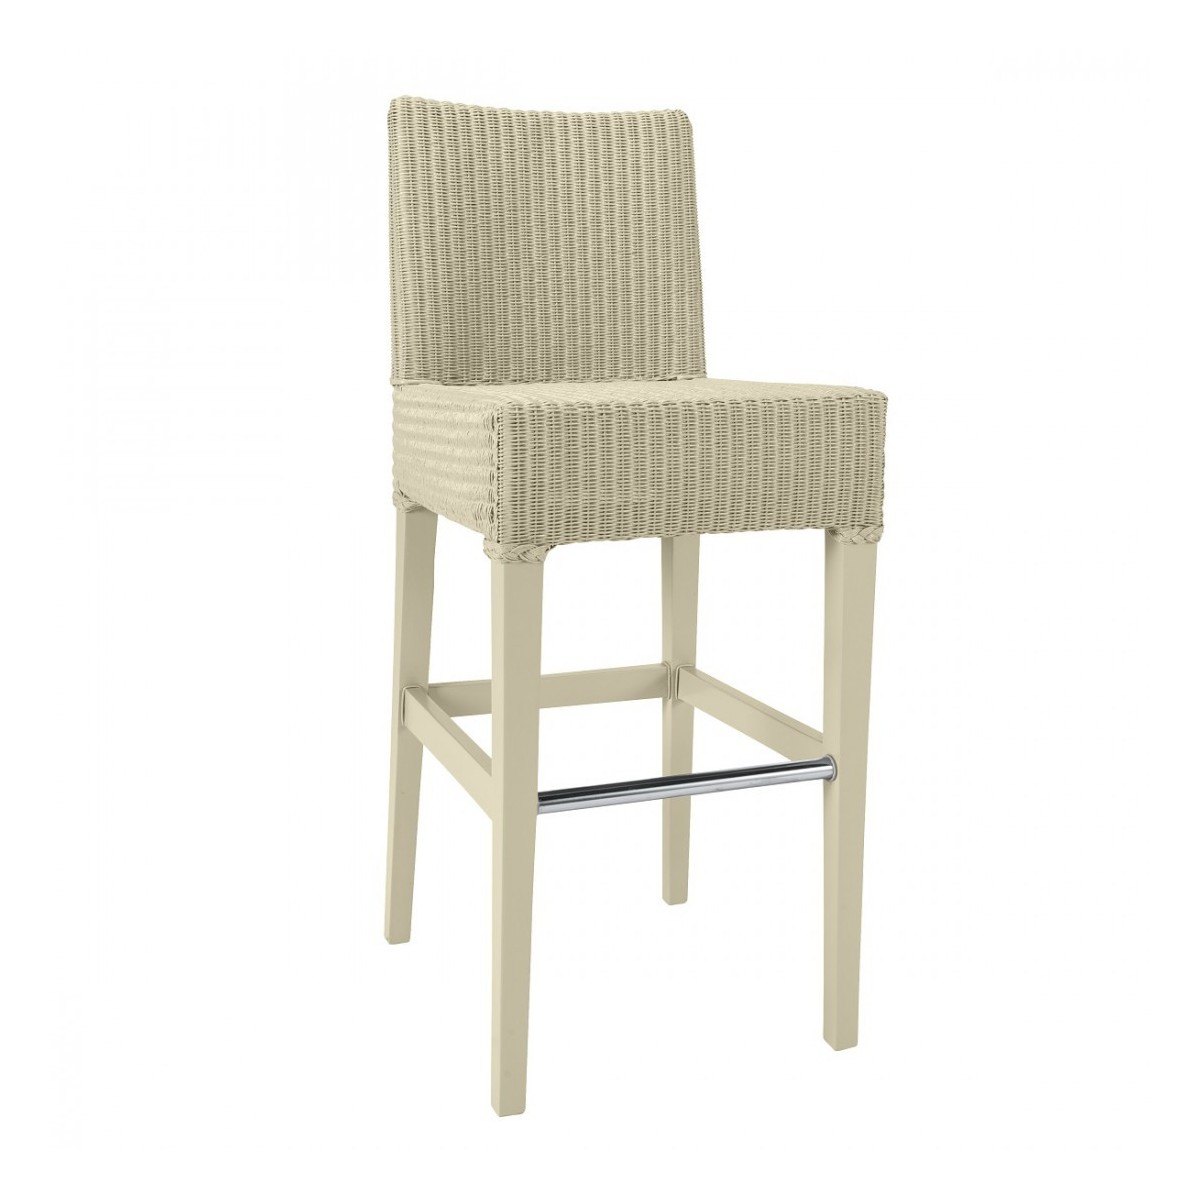 Songmics Lot De 2 Tabourets De Bar Stool Tabouret De Bar Beige Chaise De Bar Rouge Luxe Tabouret